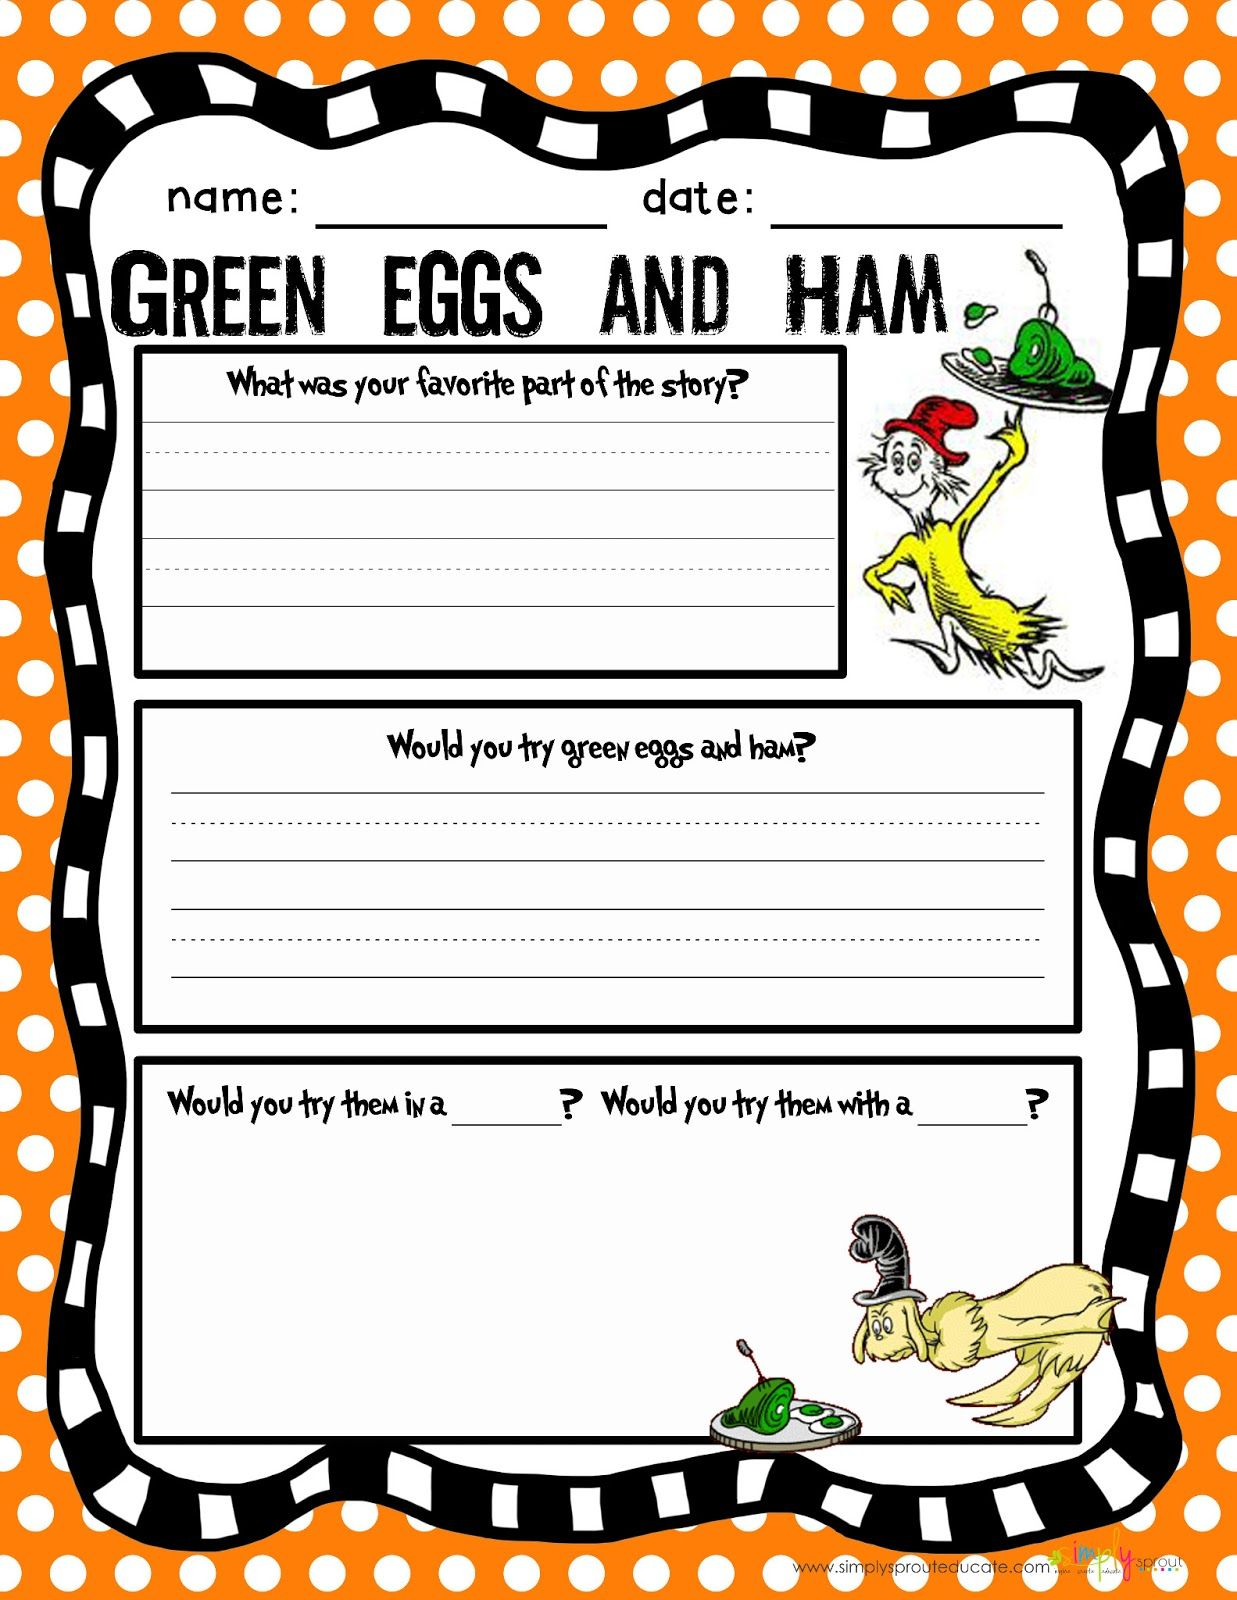 Well We Saved The Best For Last Who Doesn T Love Green Eggs And Ham This Dr Seuss Classic Has